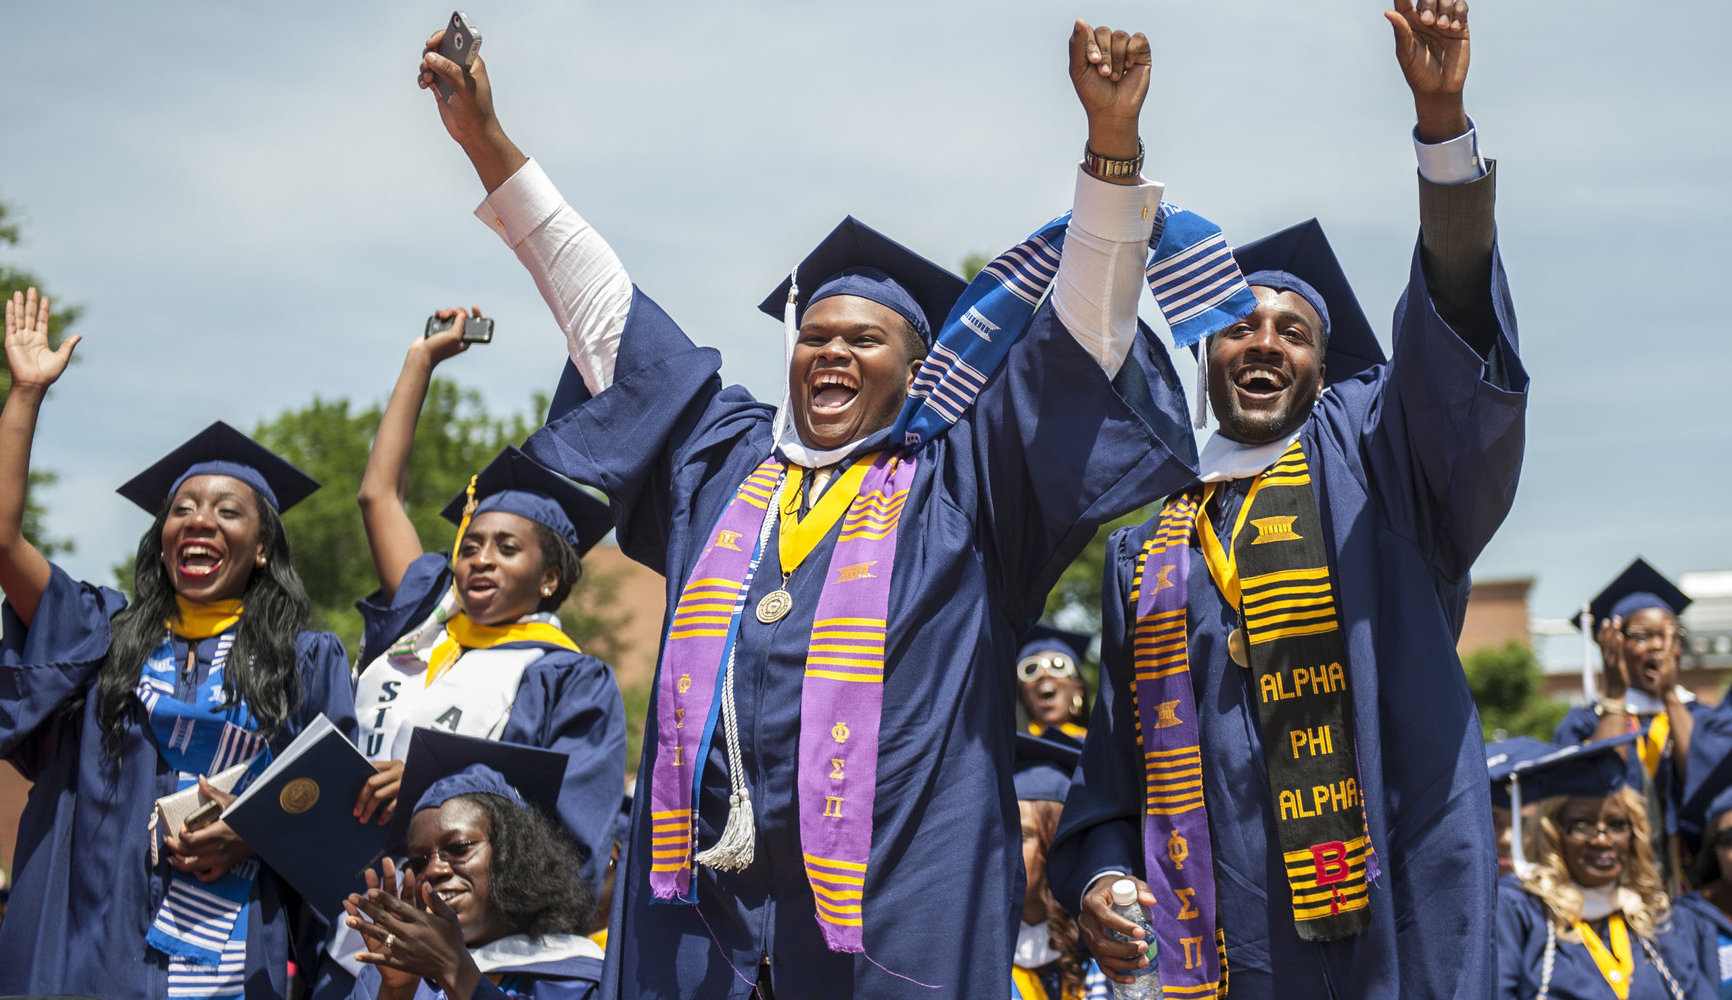 Lessons for HBCUs from 'Black Panther'